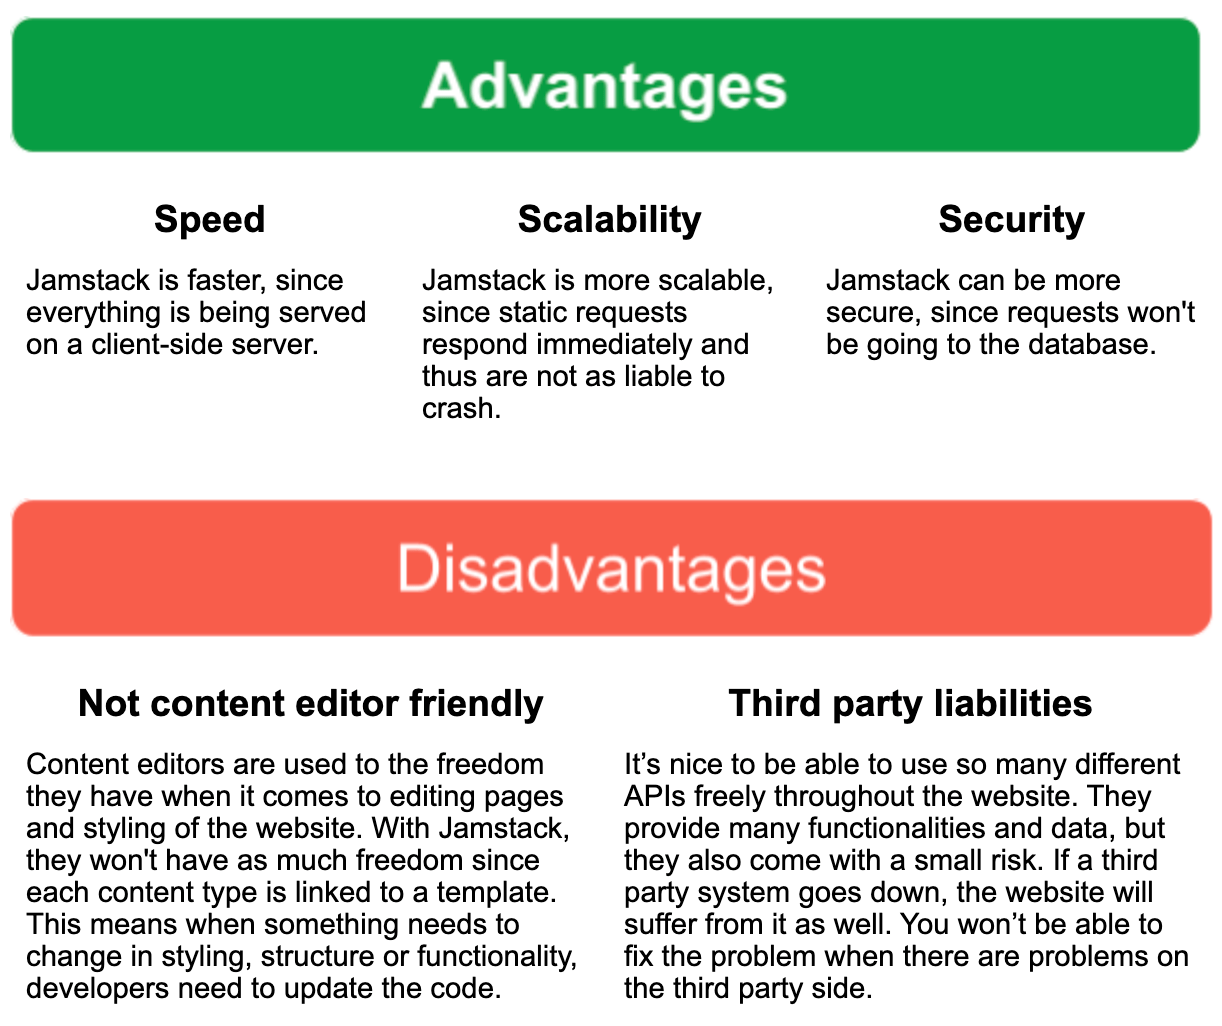 advantages and disadvantages of a JAMstack